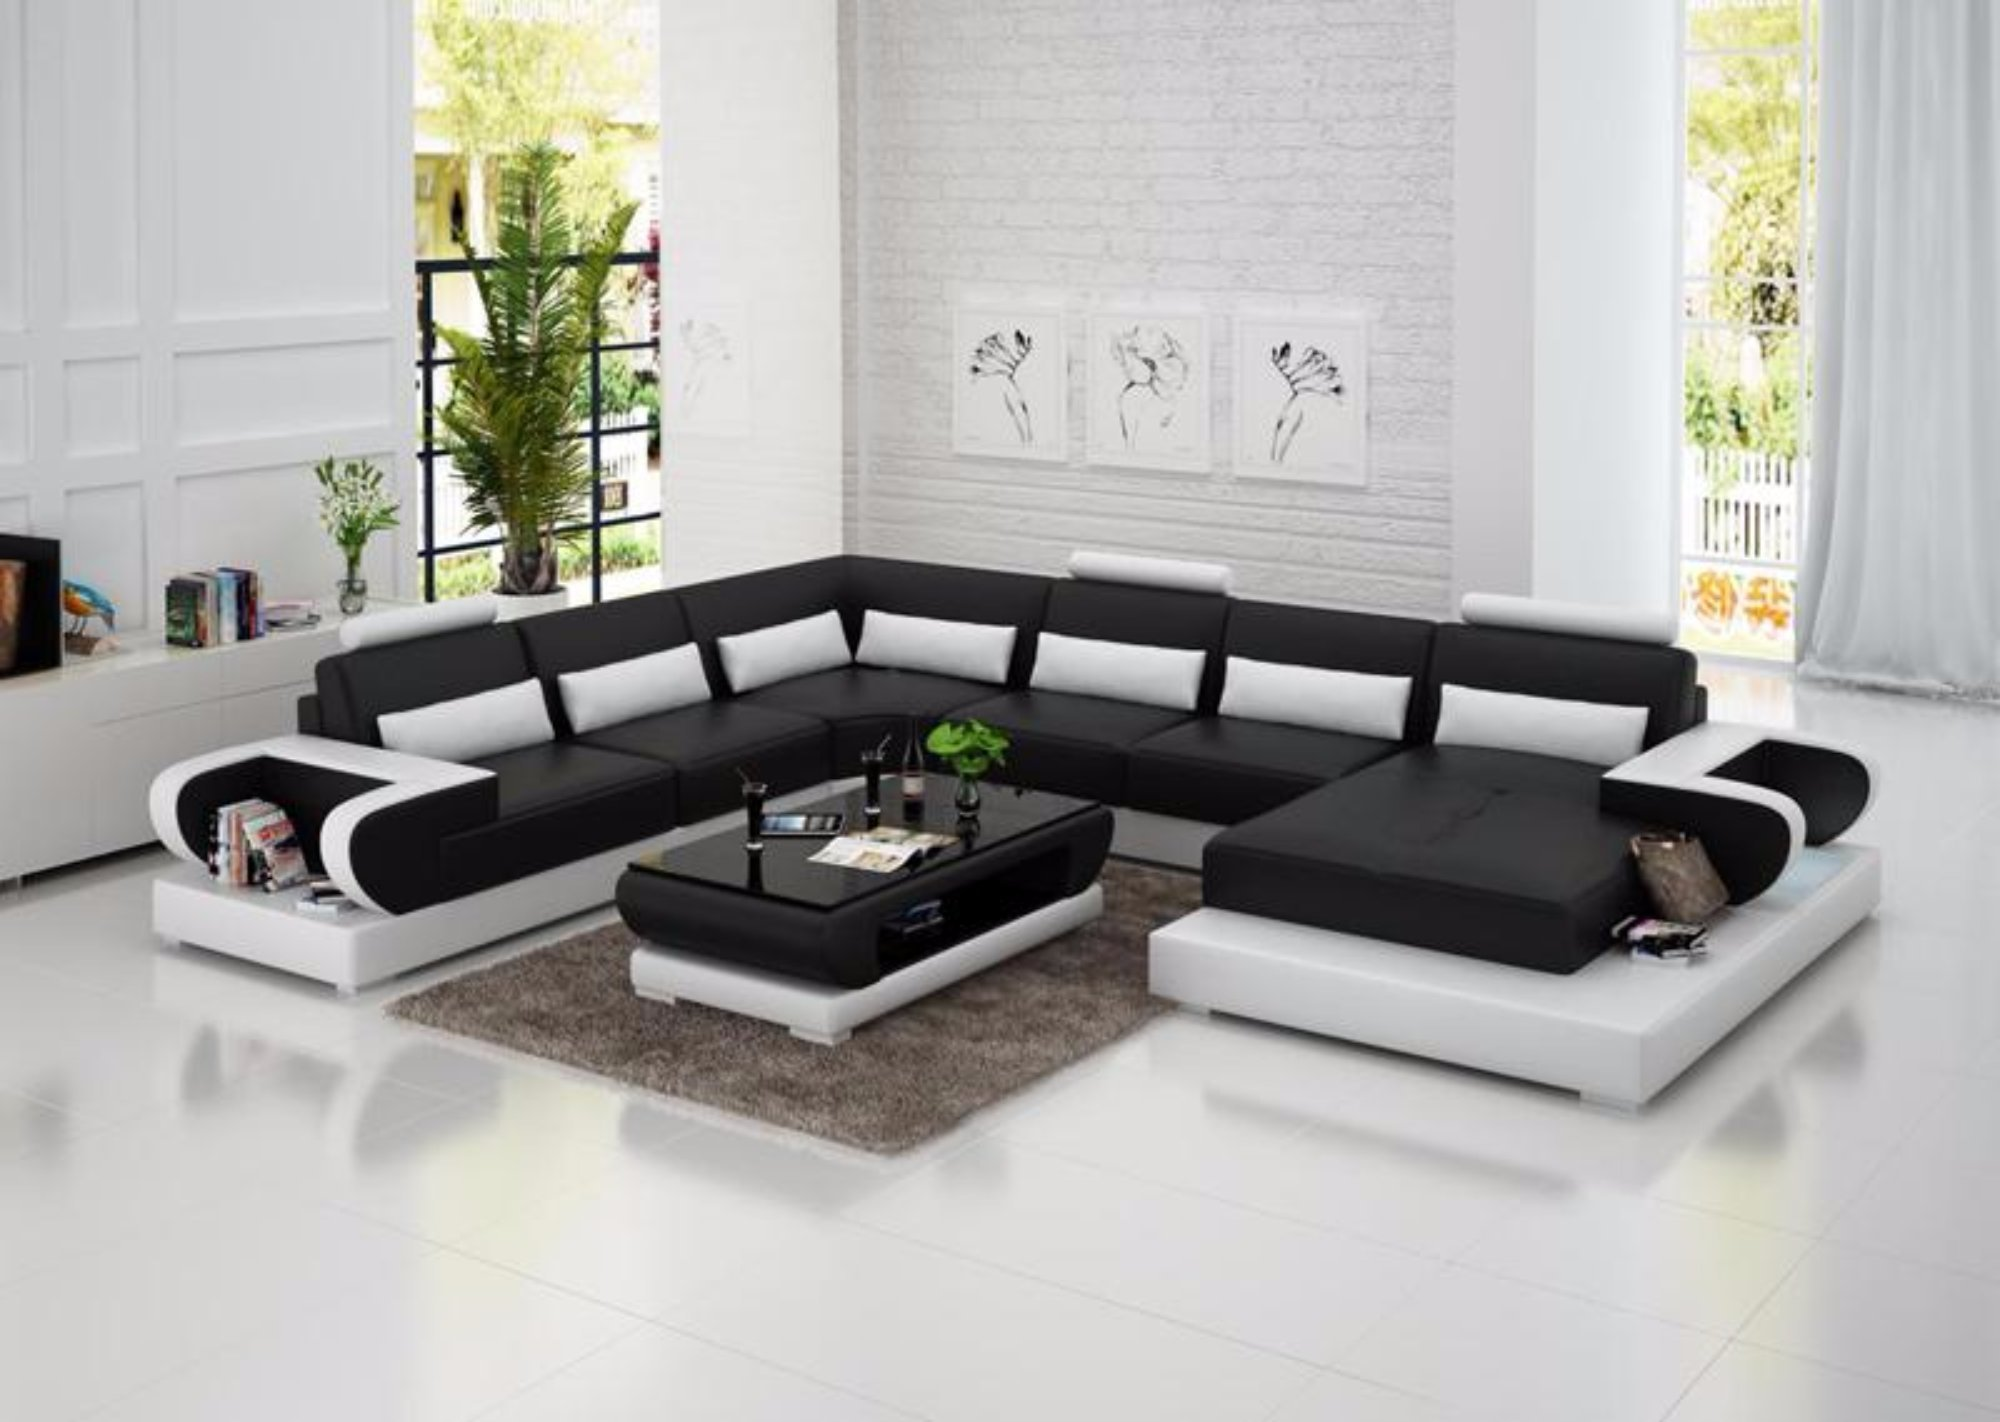 Luxury Modern High quality leather sofa for living room  Living